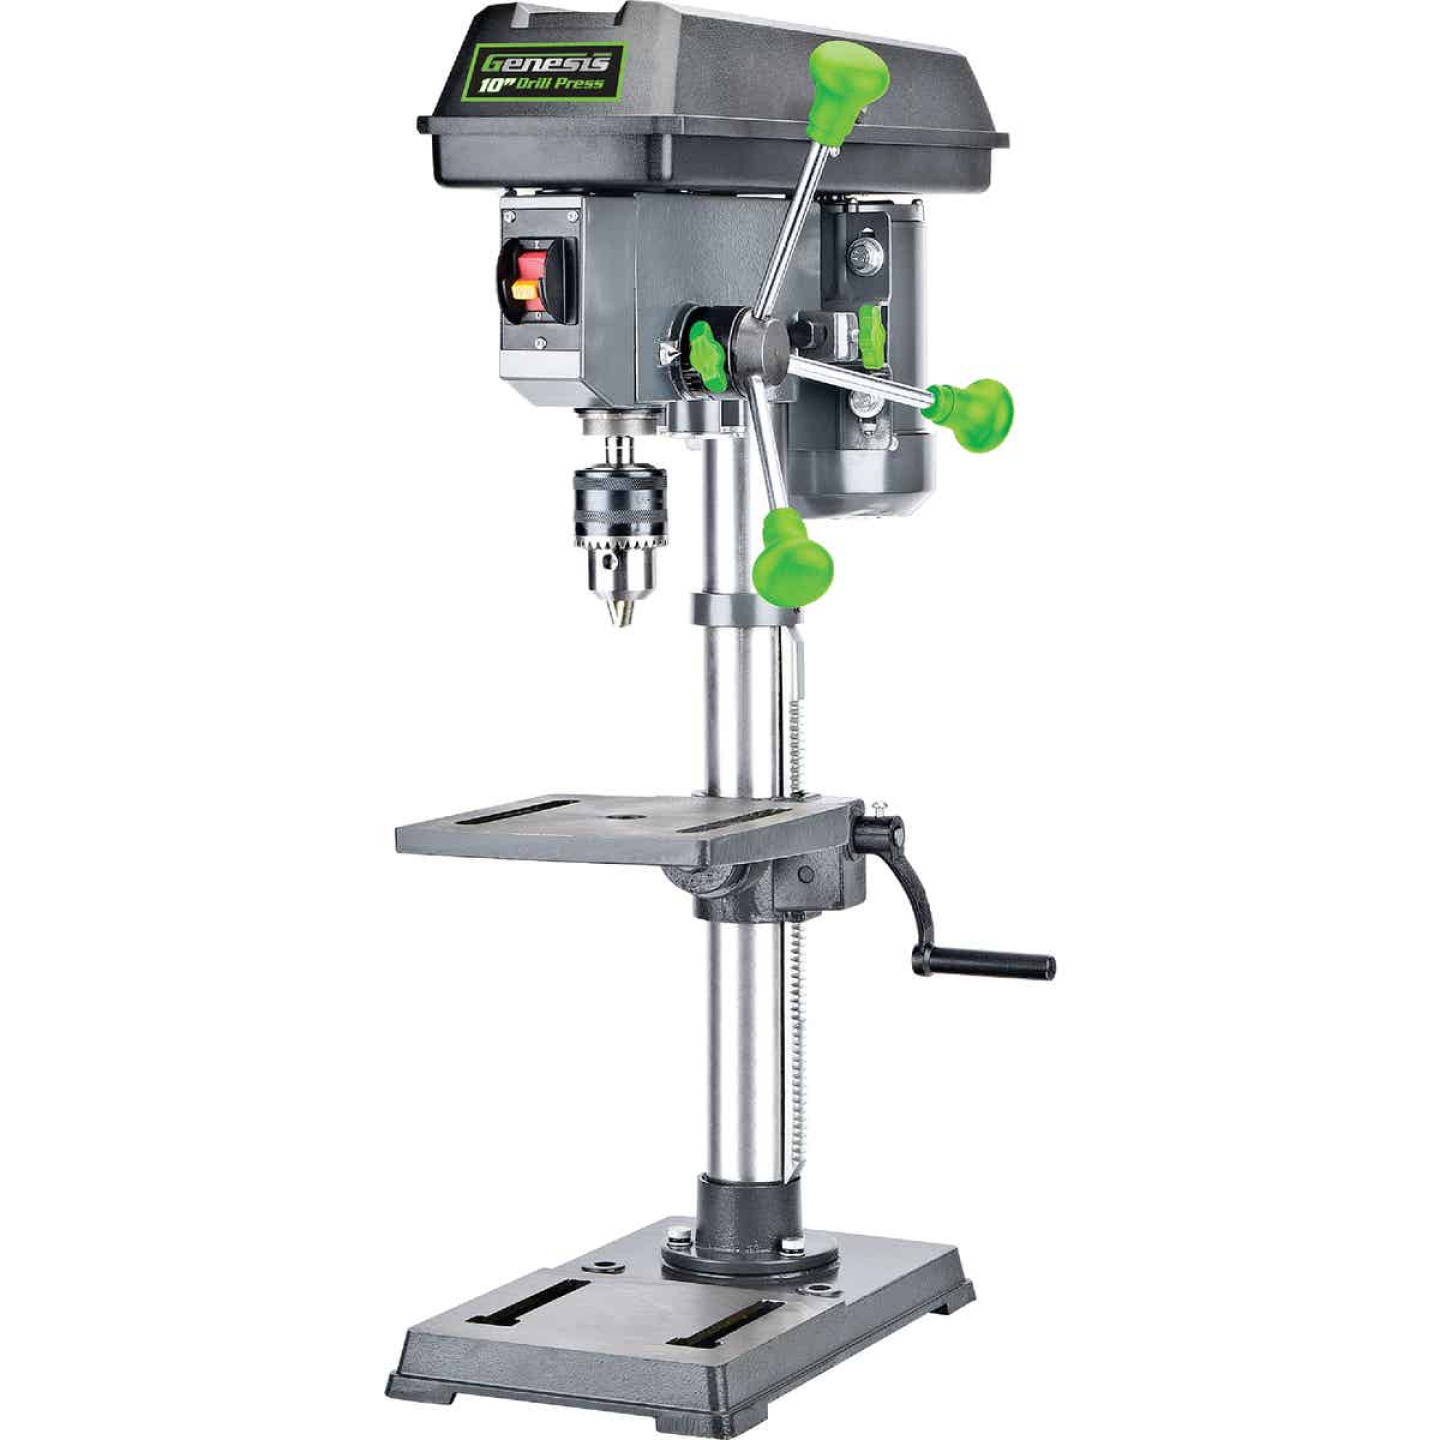 Genesis 10 In. 5-Speed Bench Top Drill Press with Work Light Image 1